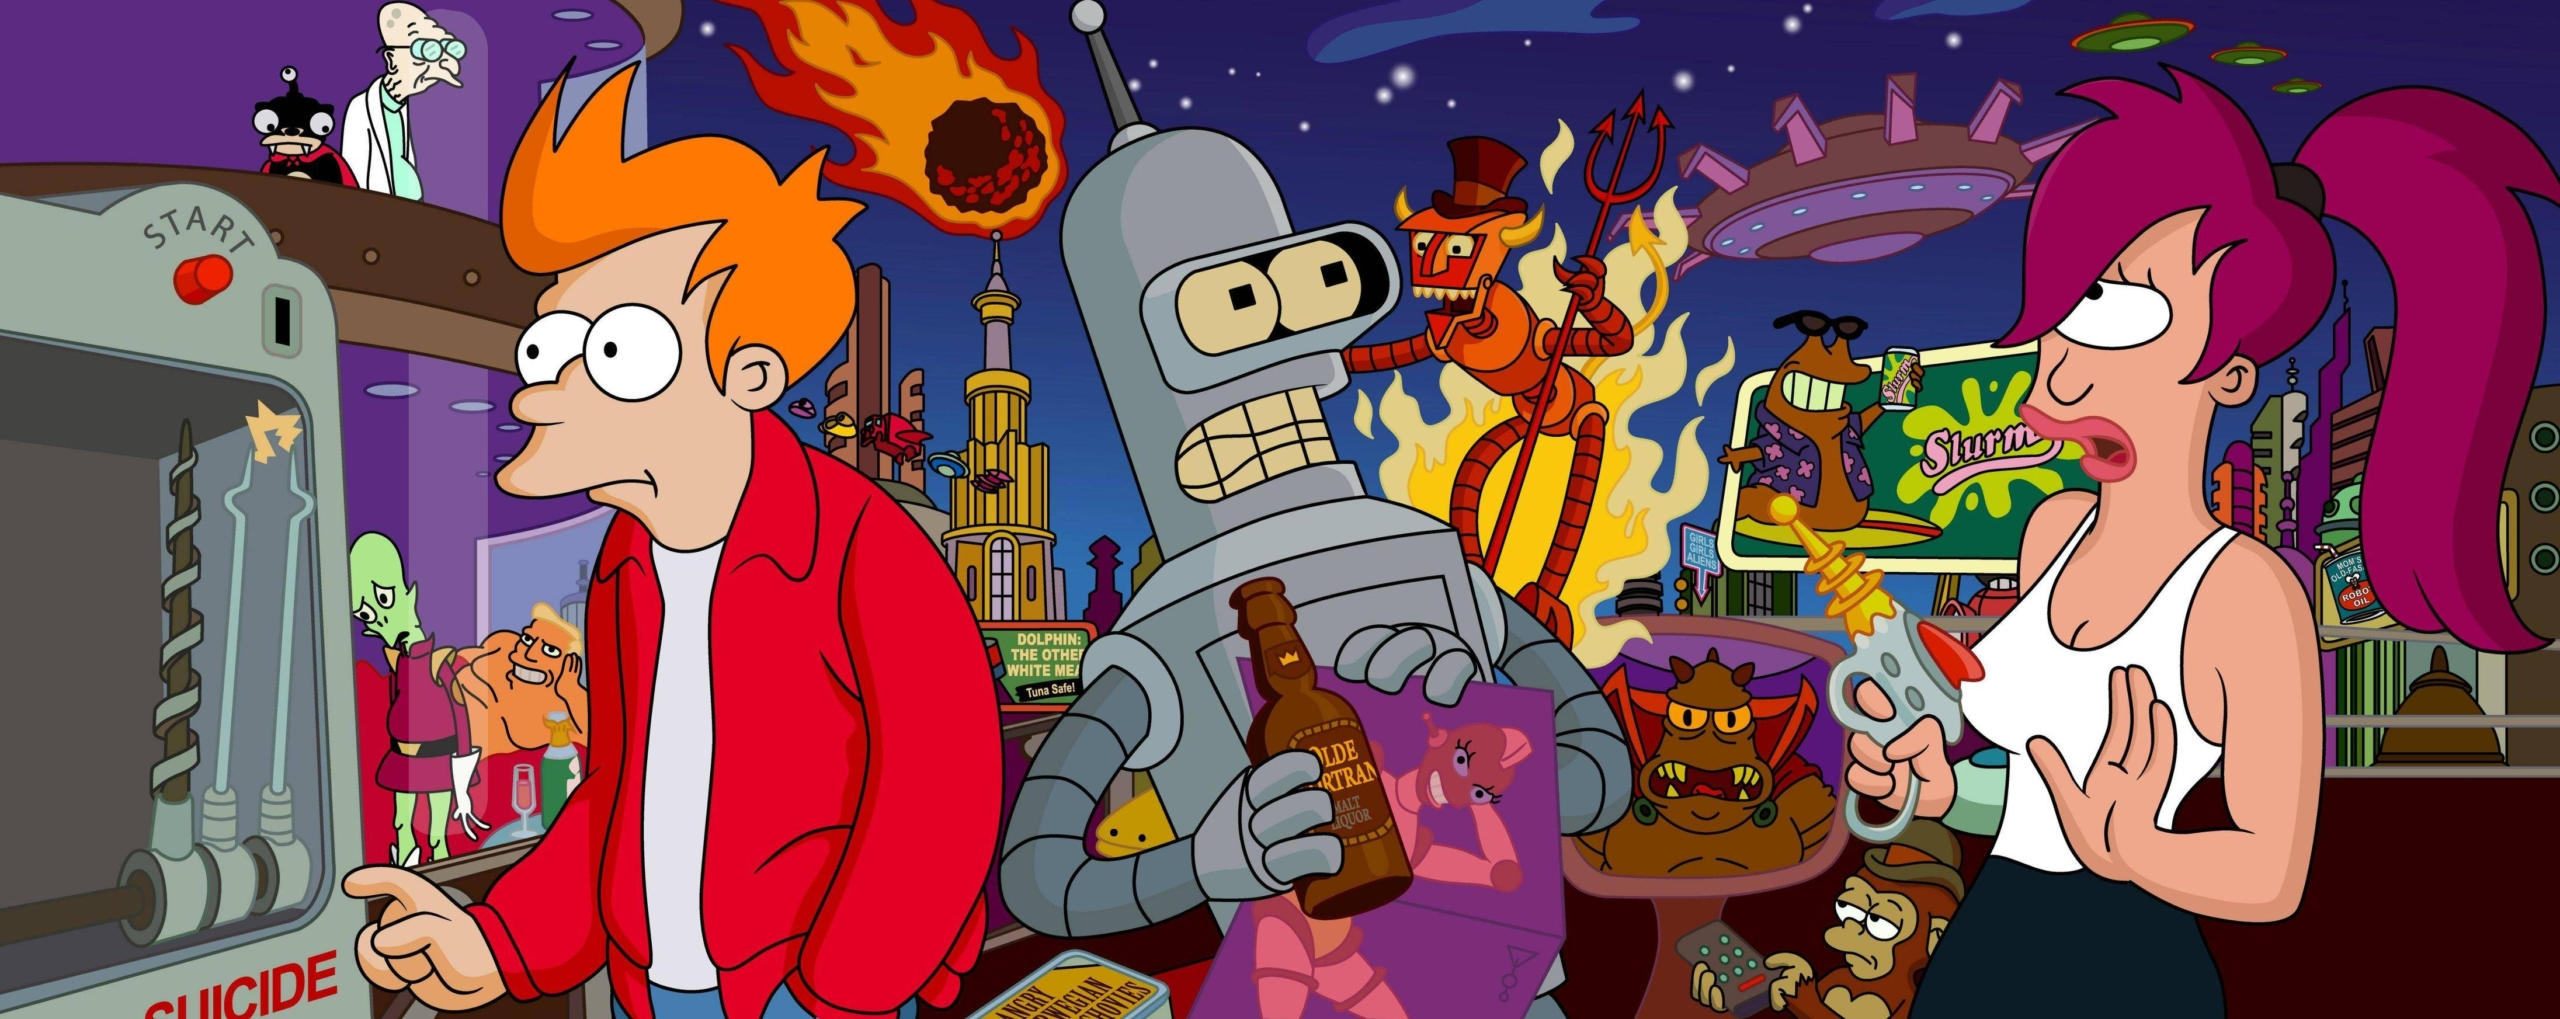 Futurama background Ideas – Wonderful Picture designs To Make Your Computer Really Stand Out